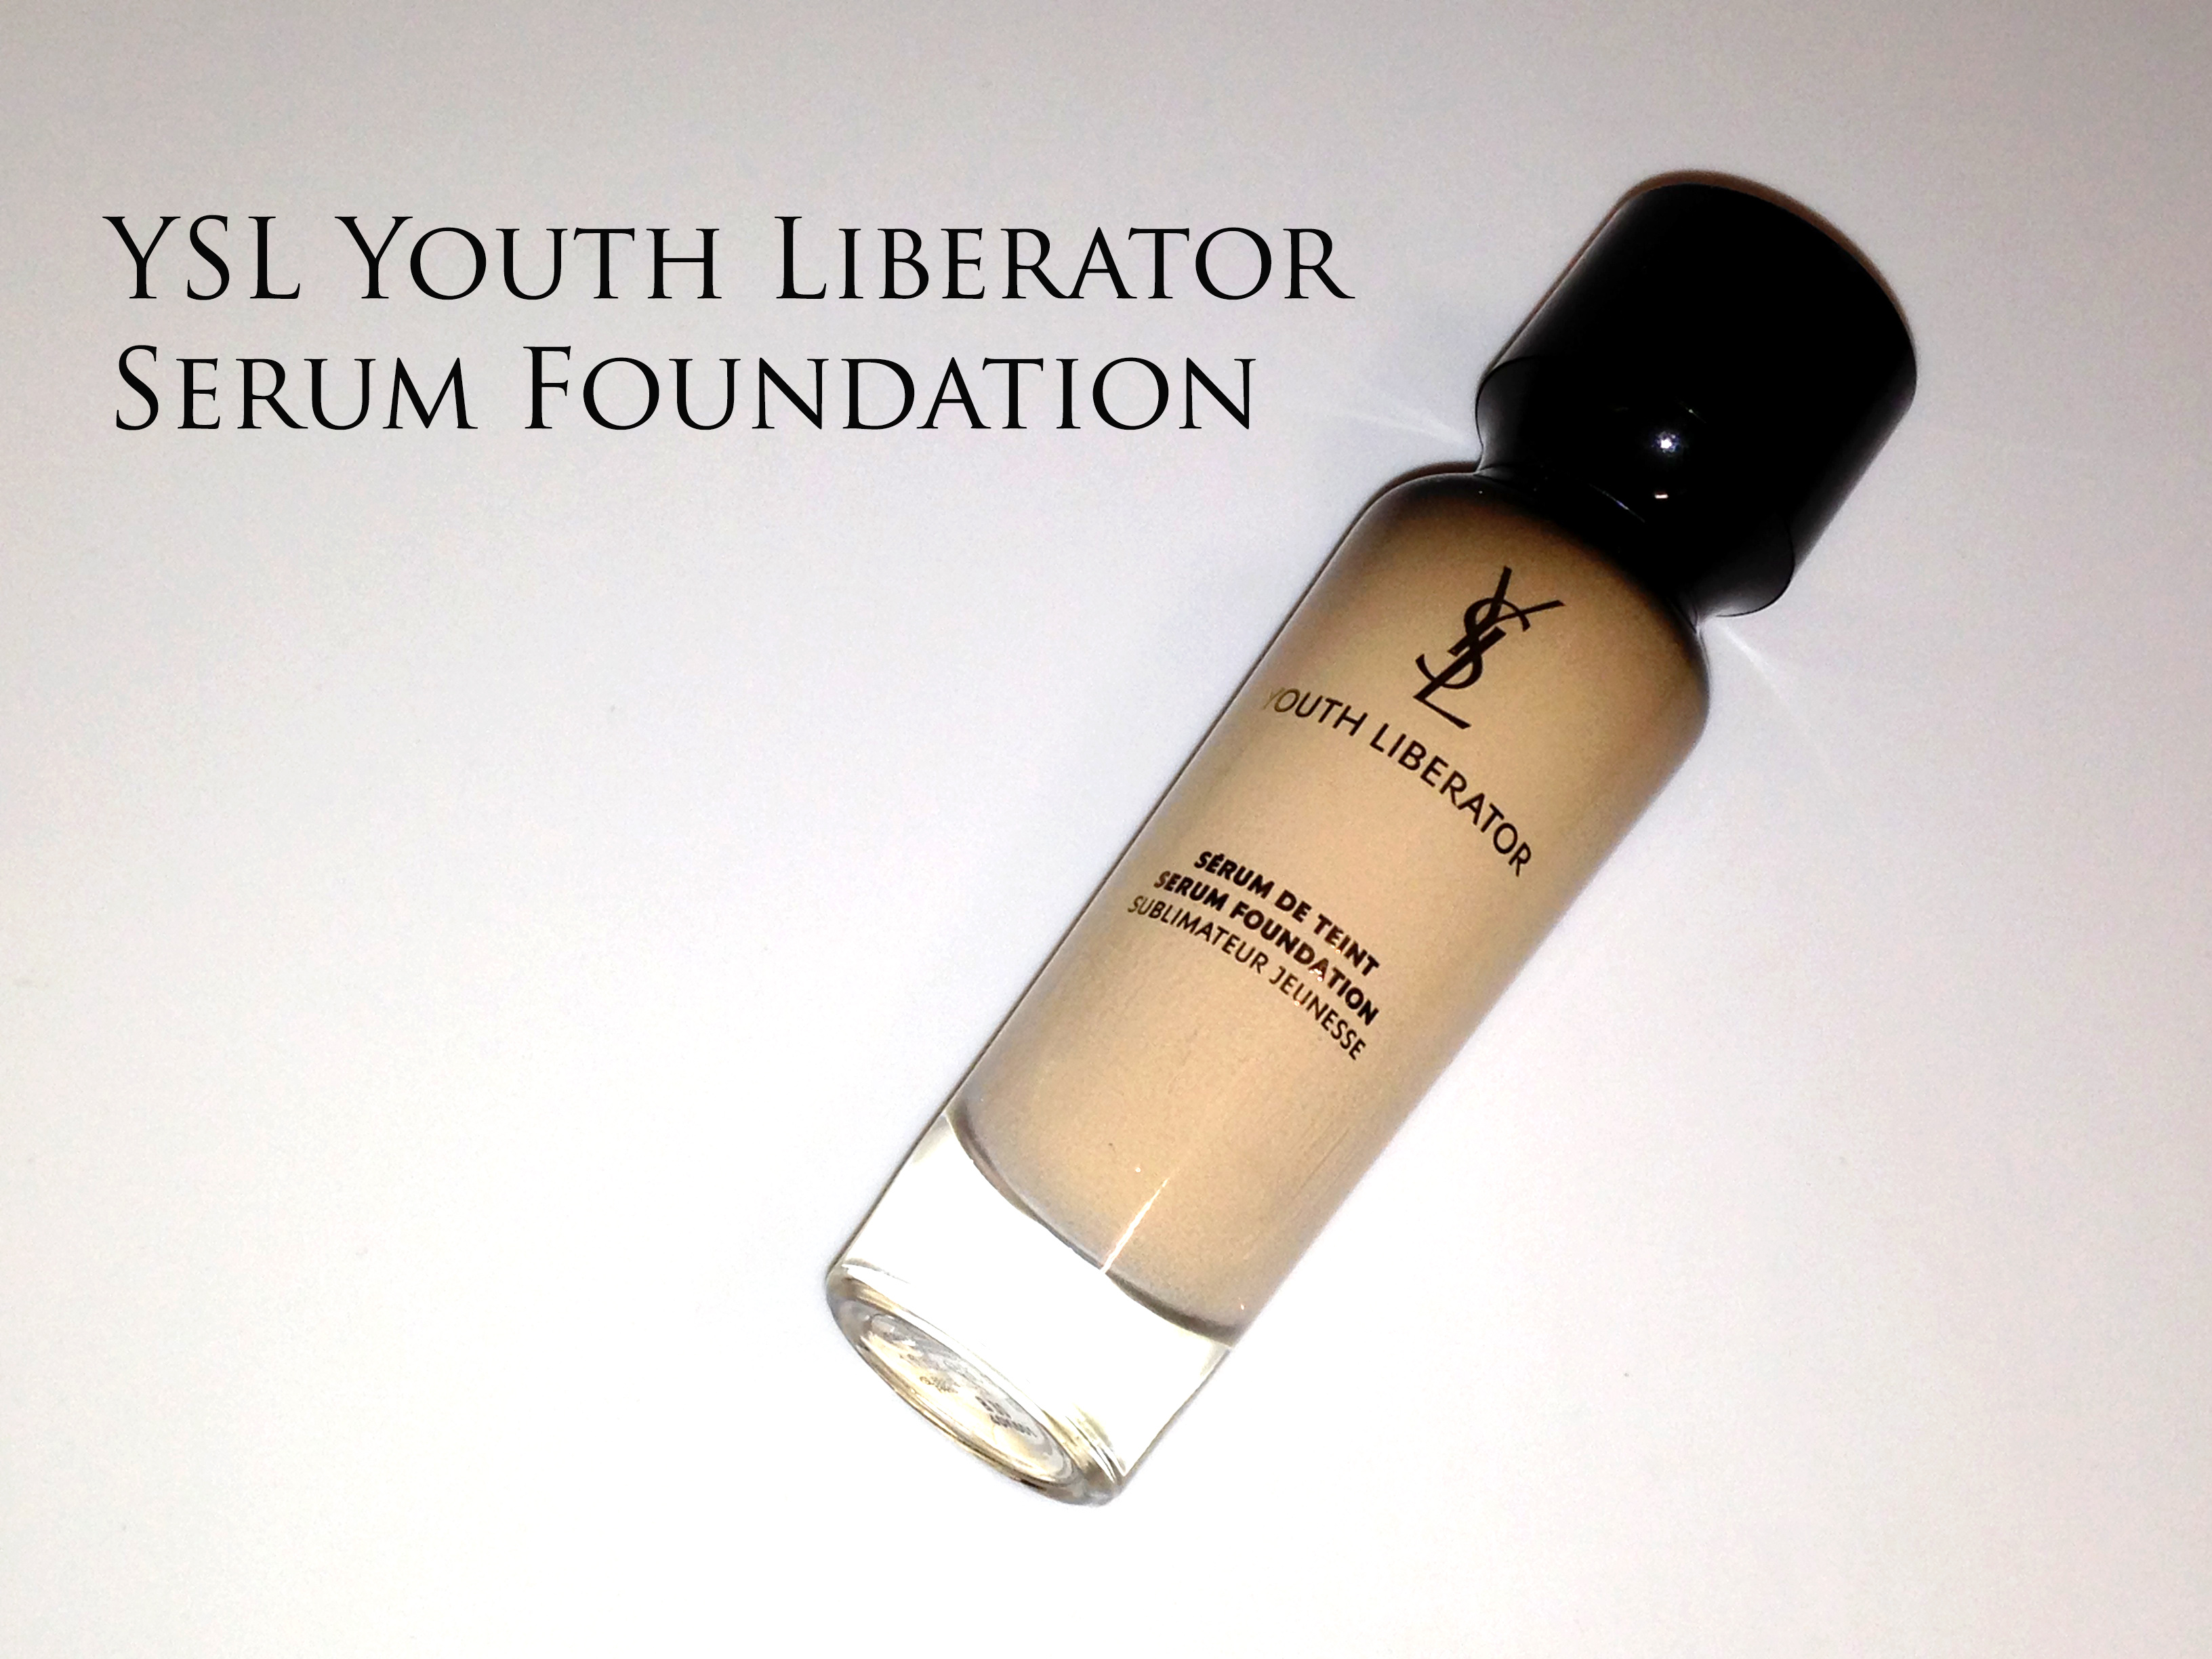 ysl forever youth liberator review